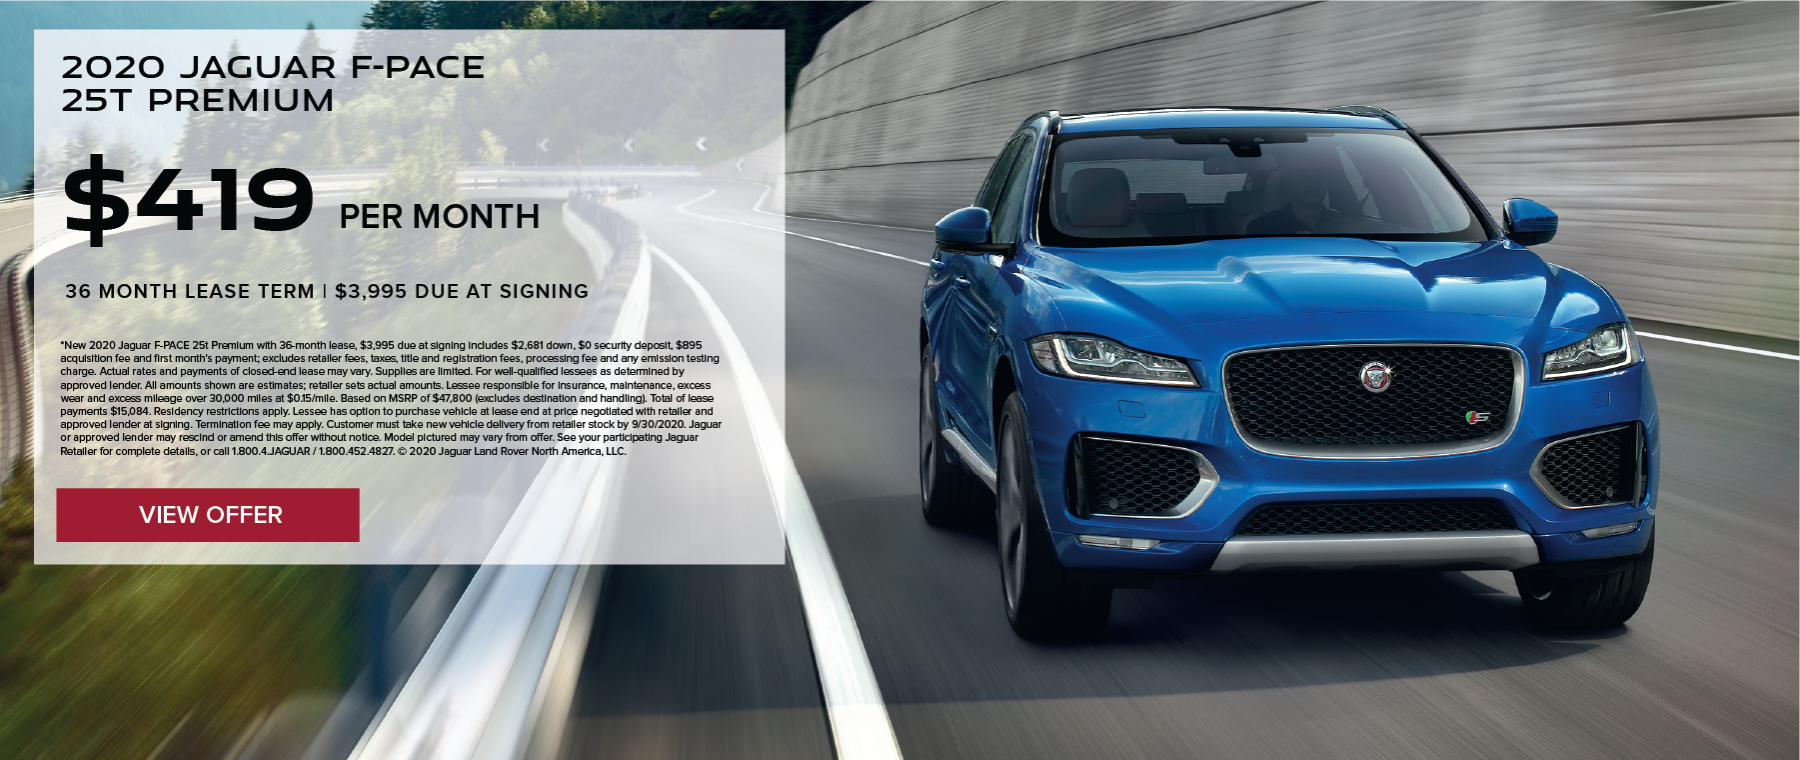 2020 JAGUAR F-PACE 25T PREMIUM. $419 PER MONTH. 36 MONTH LEASE TERM. $3,995 CASH DUE AT SIGNING. $0 SECURITY DEPOSIT. 10,000 MILES PER YEAR. EXCLUDES RETAILER FEES, TAXES, TITLE AND REGISTRATION FEES, PROCESSING FEE AND ANY EMISSION TESTING CHARGE. OFFER ENDS 9/30/2020.